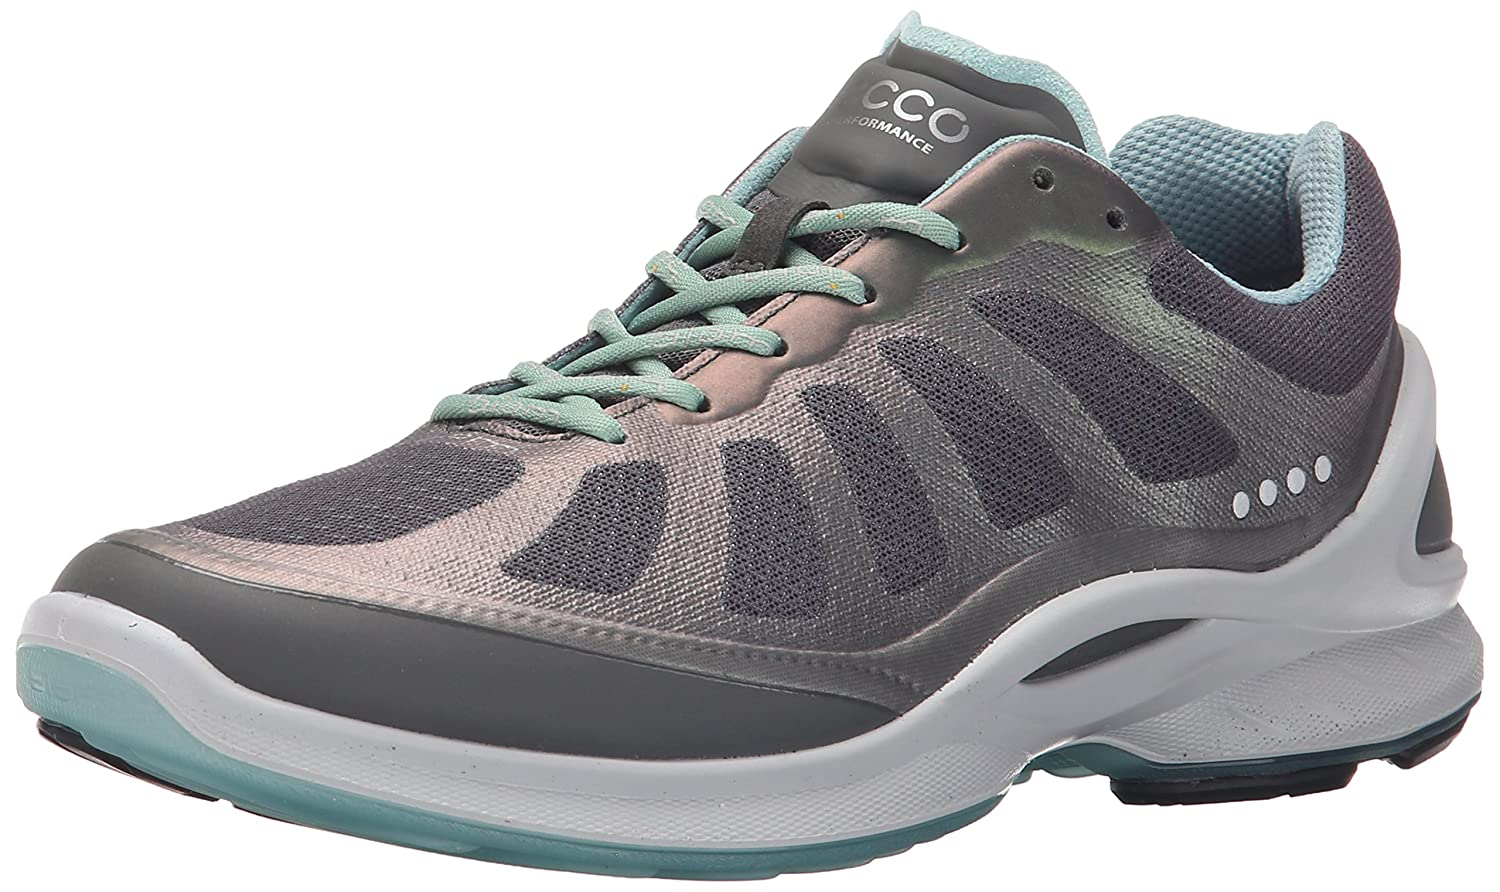 ECCO Women's Biom Fjuel Racer Cross M Trainer B00VJ4PK42 36 EU/5-5.5 M Cross US|Dark Shadow a295a7